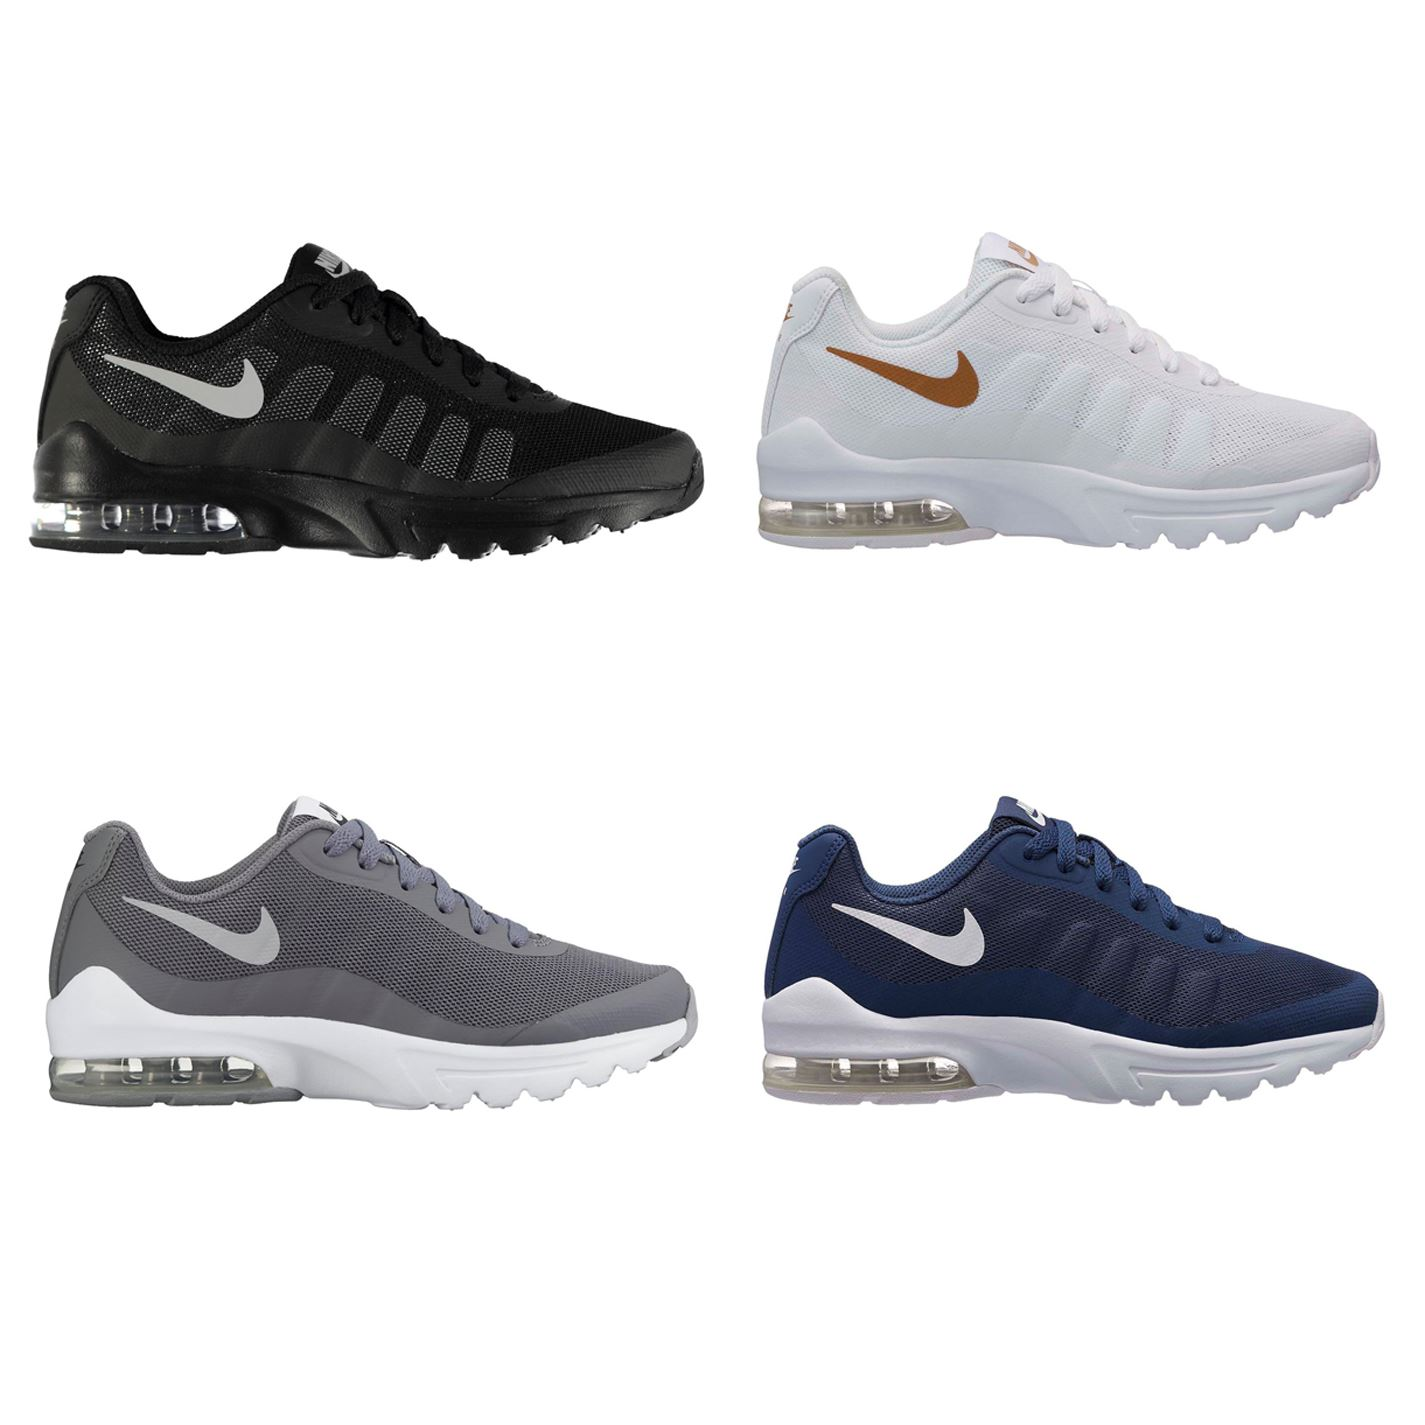 Details about Nike Air Max Invigor Trainers Junior Boys Shoes Footwear